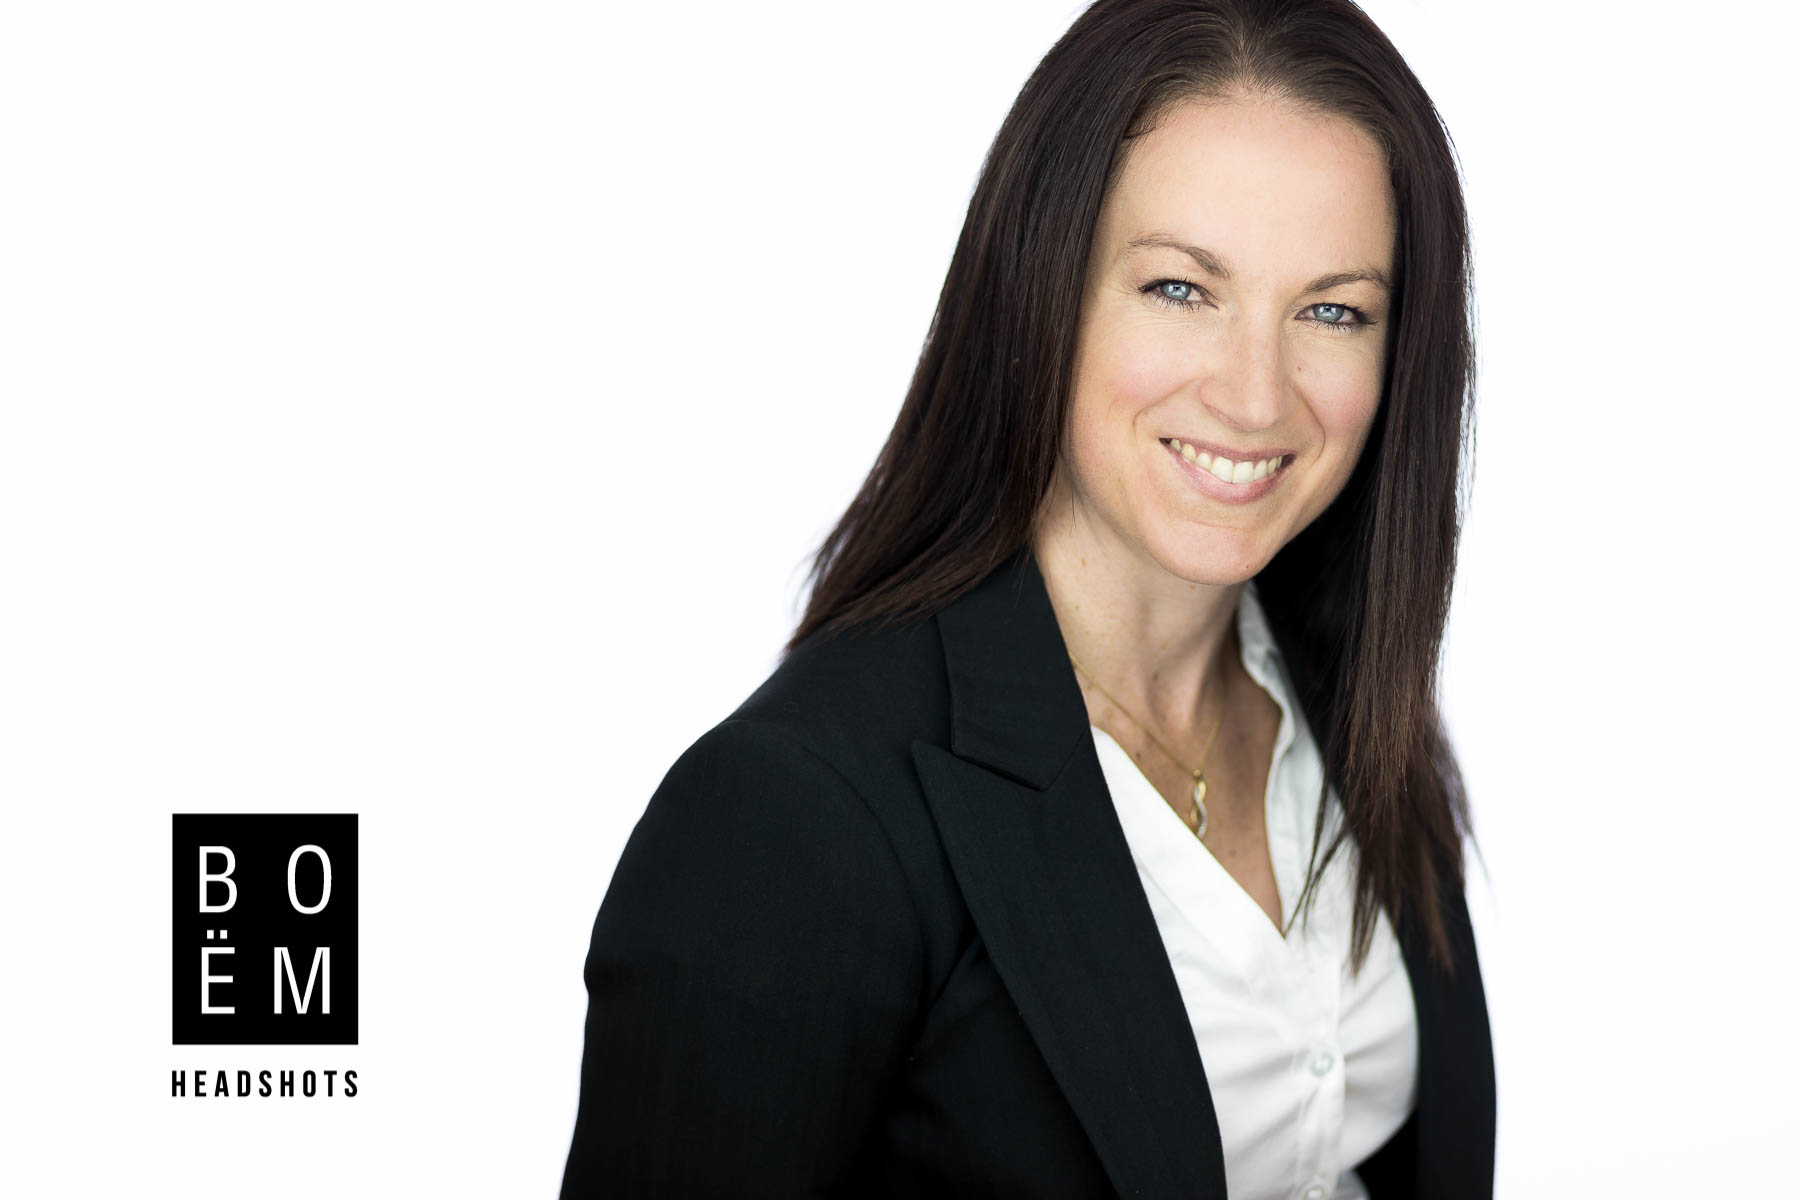 Crissy came to see us for her new corporate headshots. She's and accountant and just because she works with numbers doesn't mean she needs to have a boring headshot. We spent an hour in the studio and got some truly amazing images for her to use.